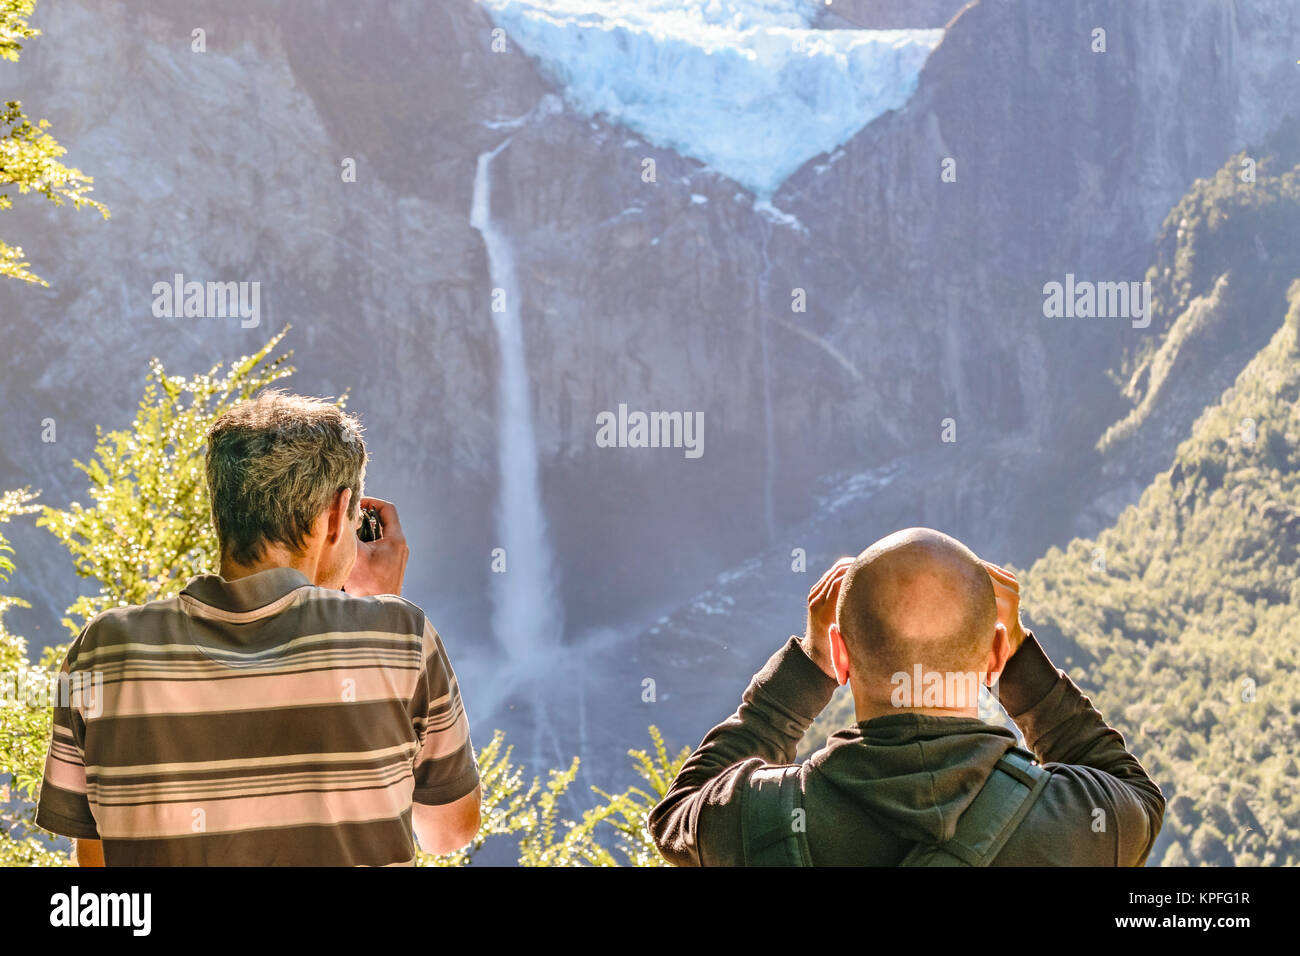 Men taking photos of glacier at queulat park, patagonia, chile - Stock Image